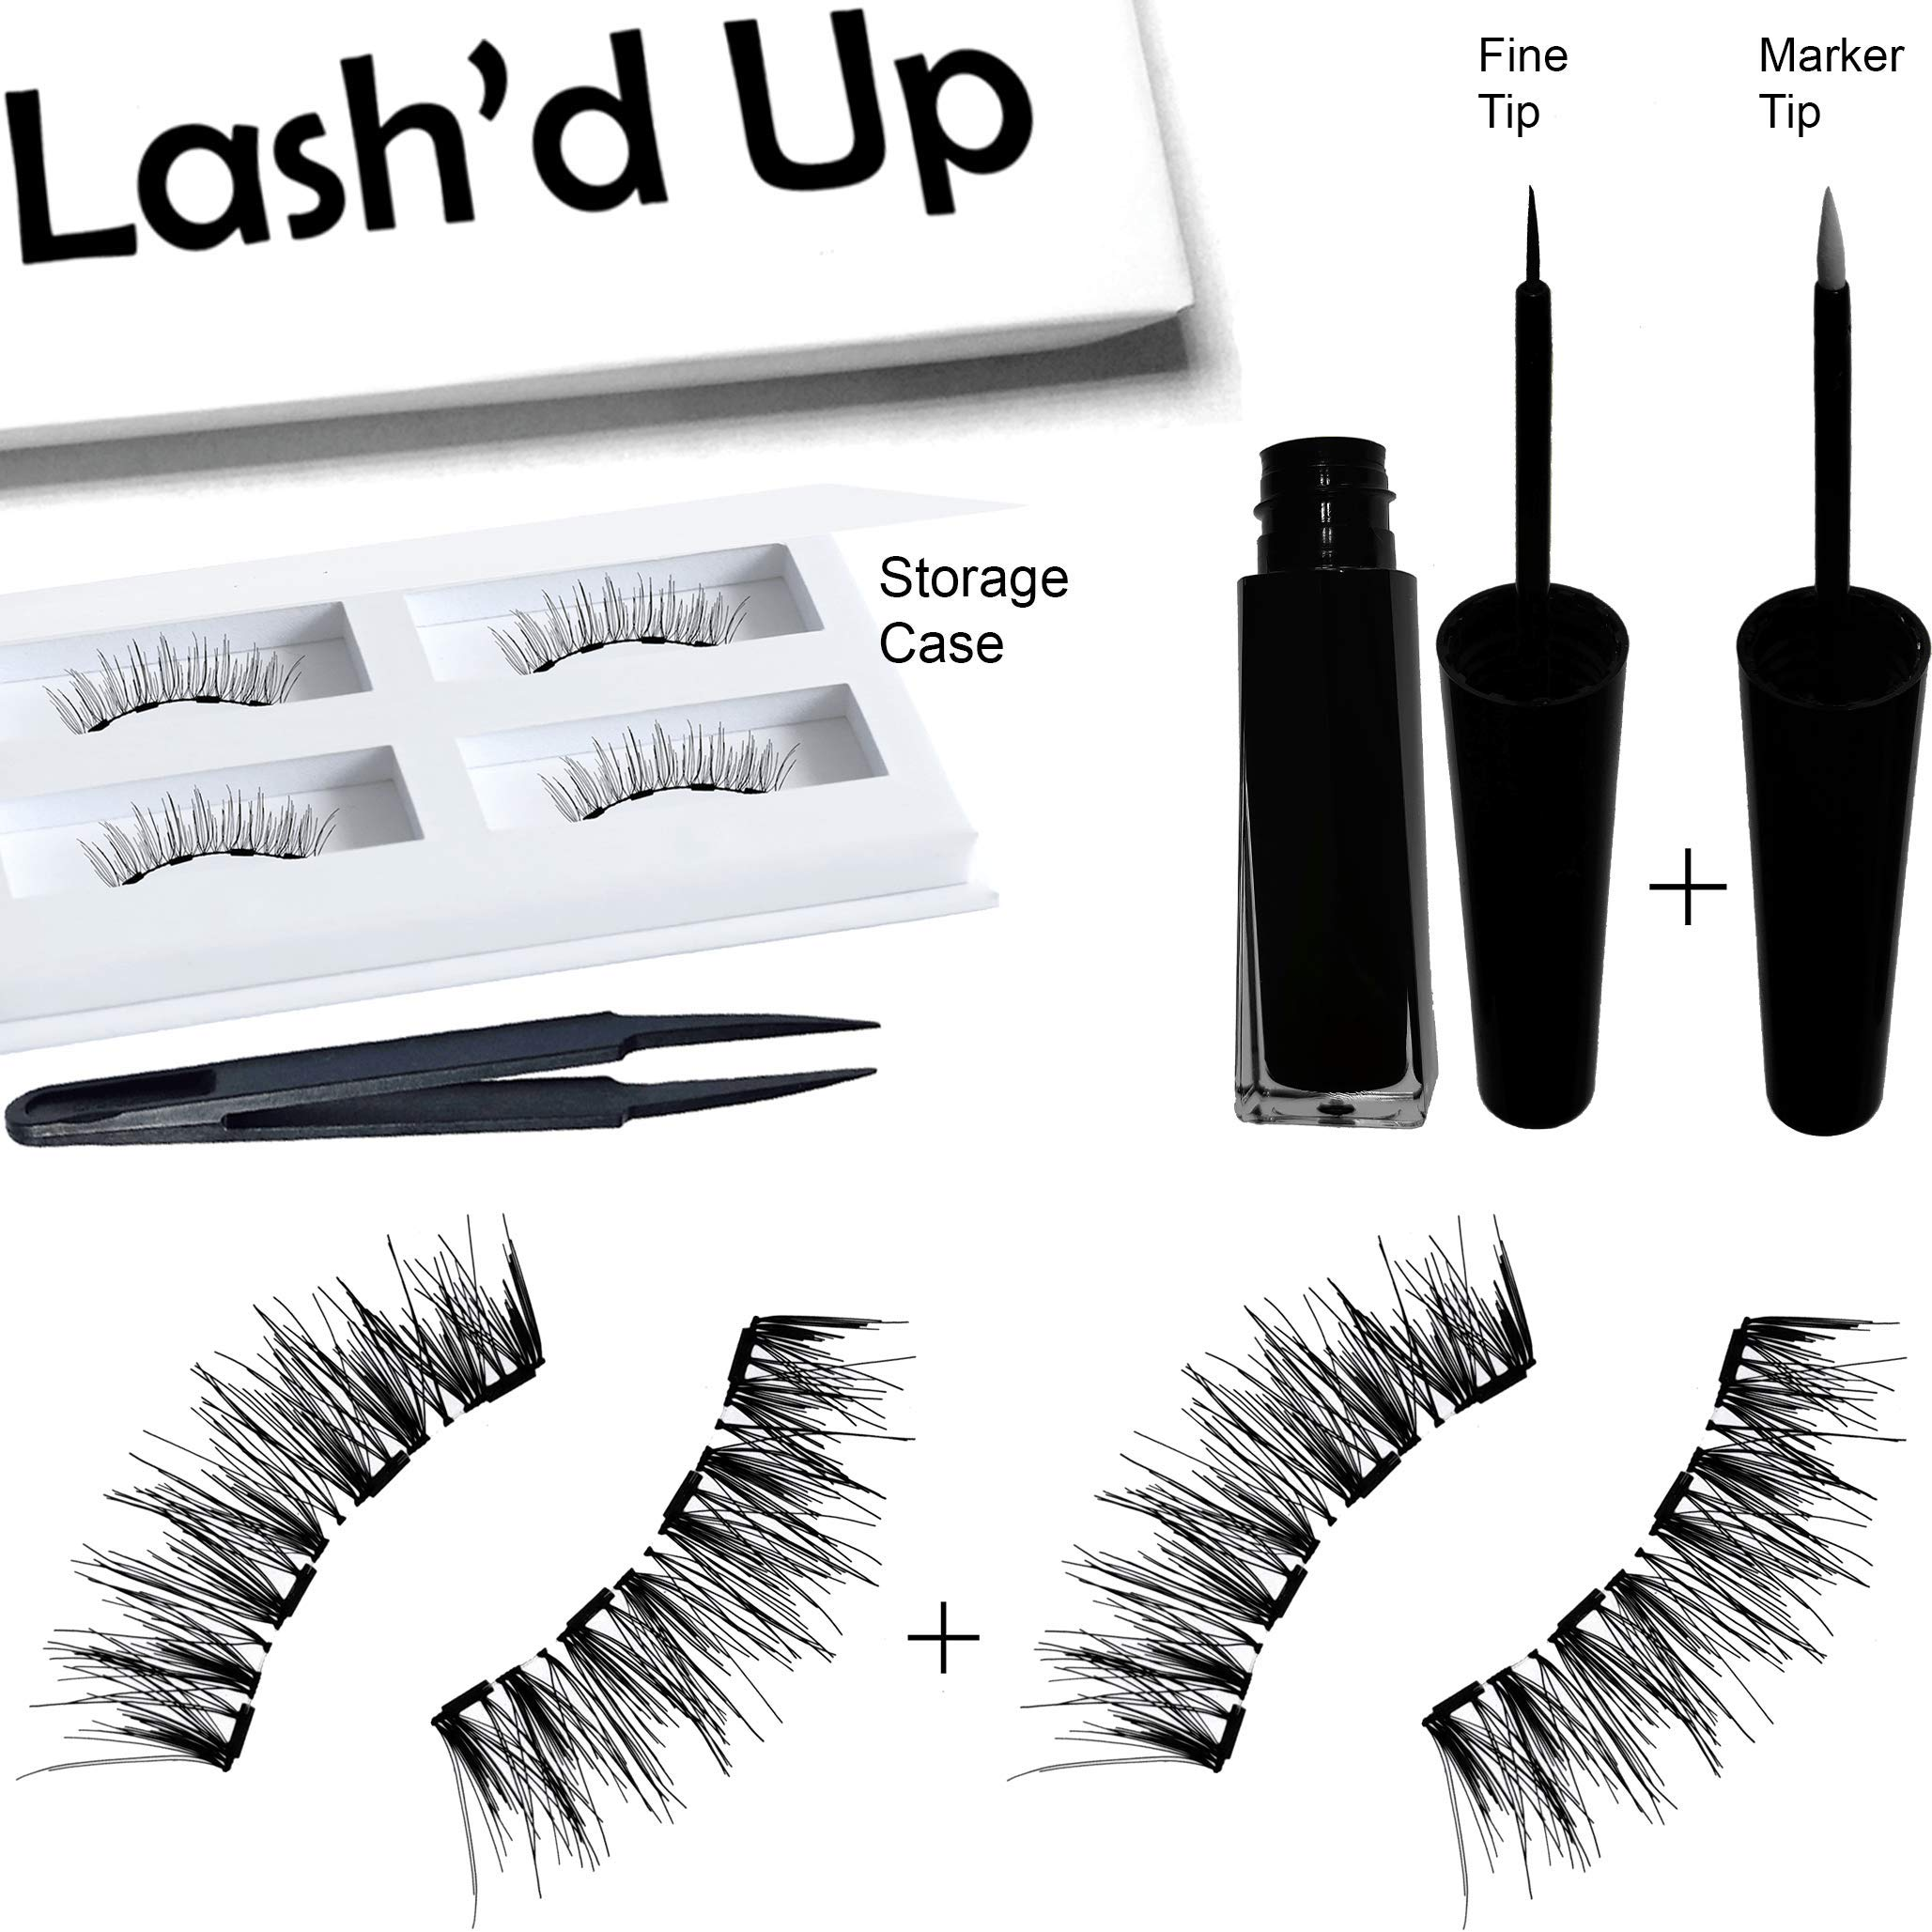 Lash'd Up All Day Tattoo Very Black Magnetic Liner & Human Hair Lashes (2 Pairs) kit Waterproof Reusable Child Cancer Partner | Eyeliner 5ml + Runway Girl Human Hair Lashes (Midsize-Large Eyes)